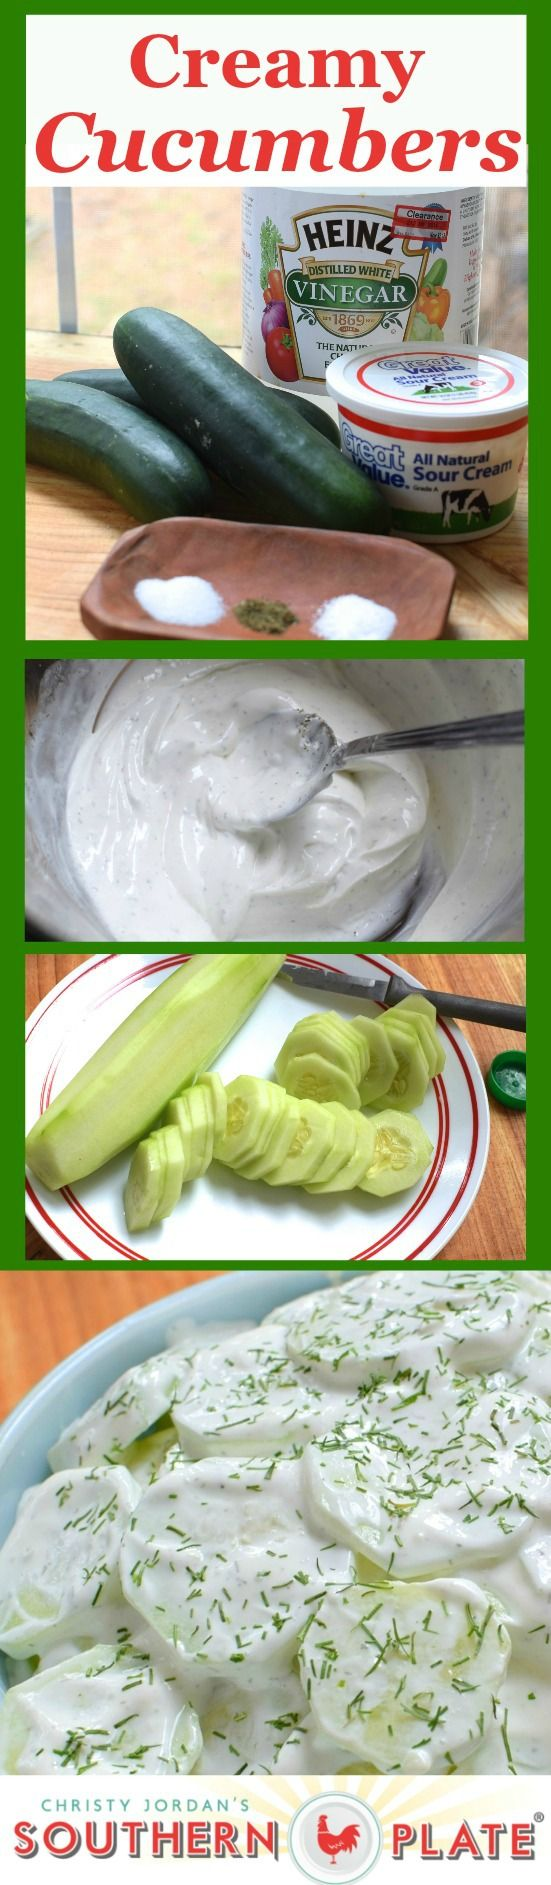 Recipe for Fresh Cucumbers in a Light Sour Cream Dressing - Absolutely Delicious!